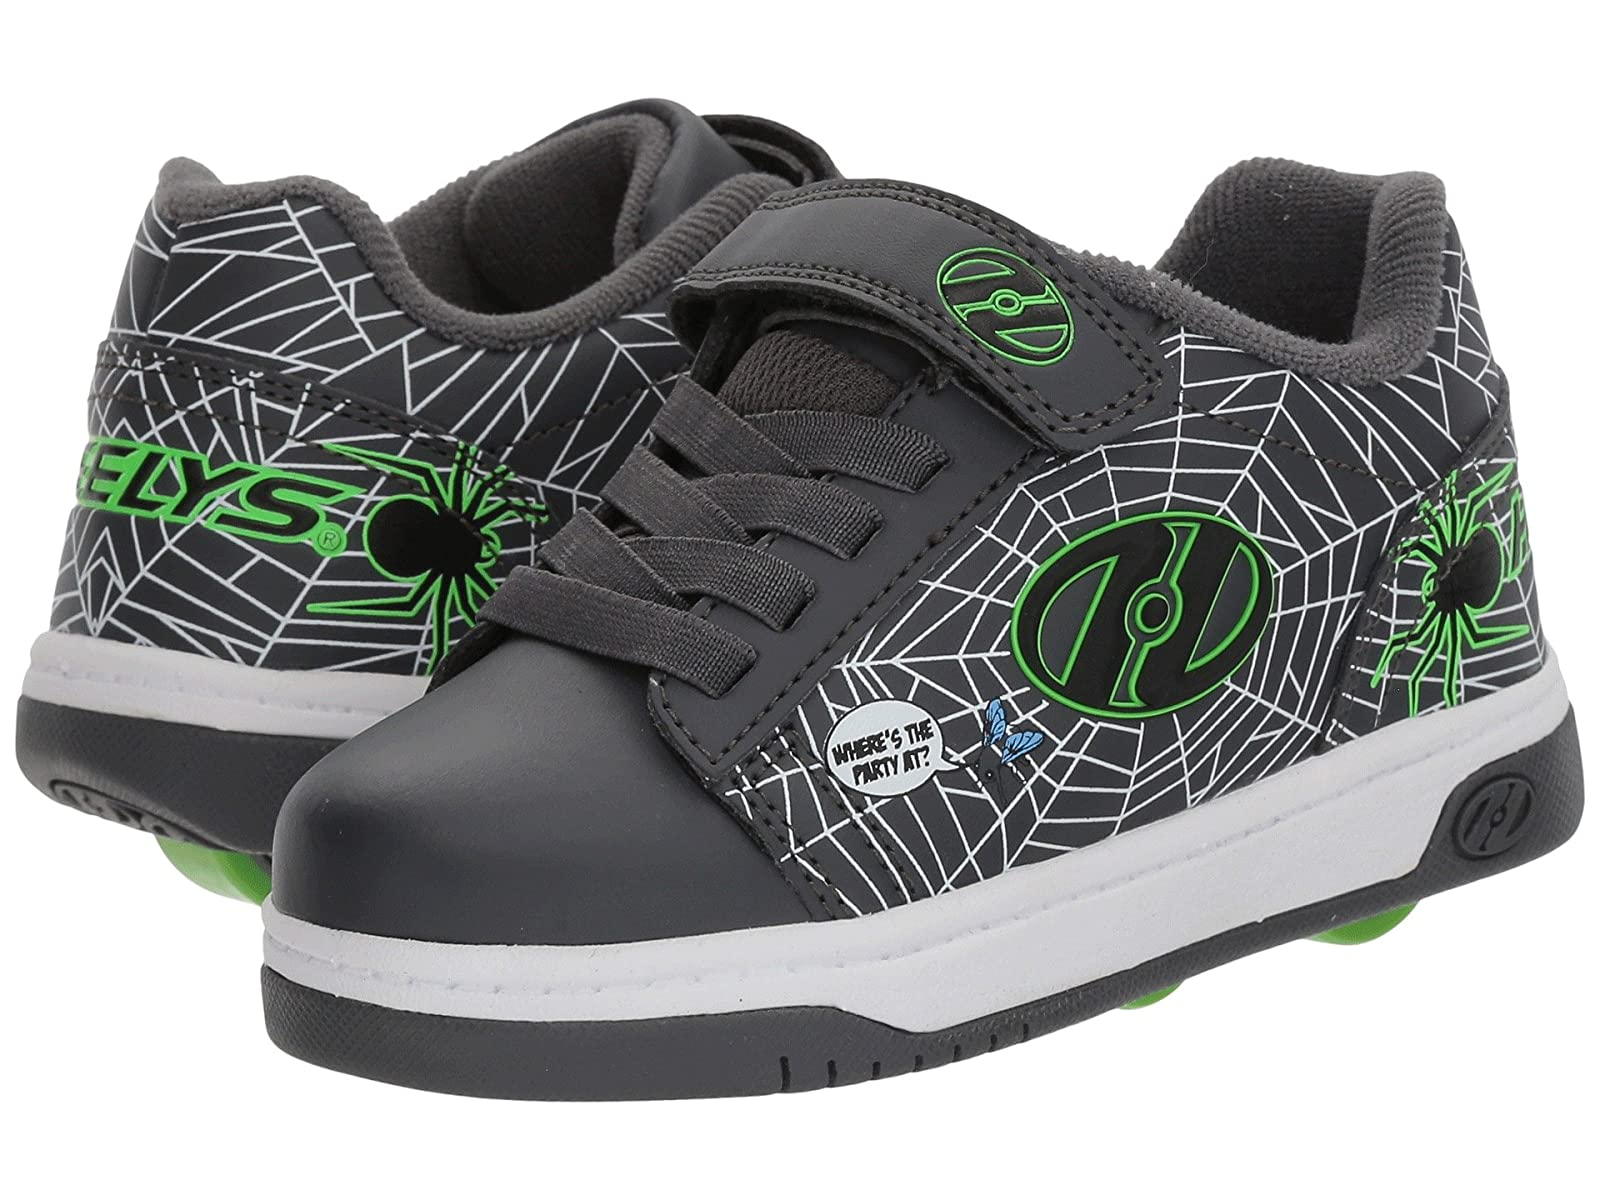 Heelys Dual Up x2 (Little Kid/Big Kid)Atmospheric grades have affordable shoes